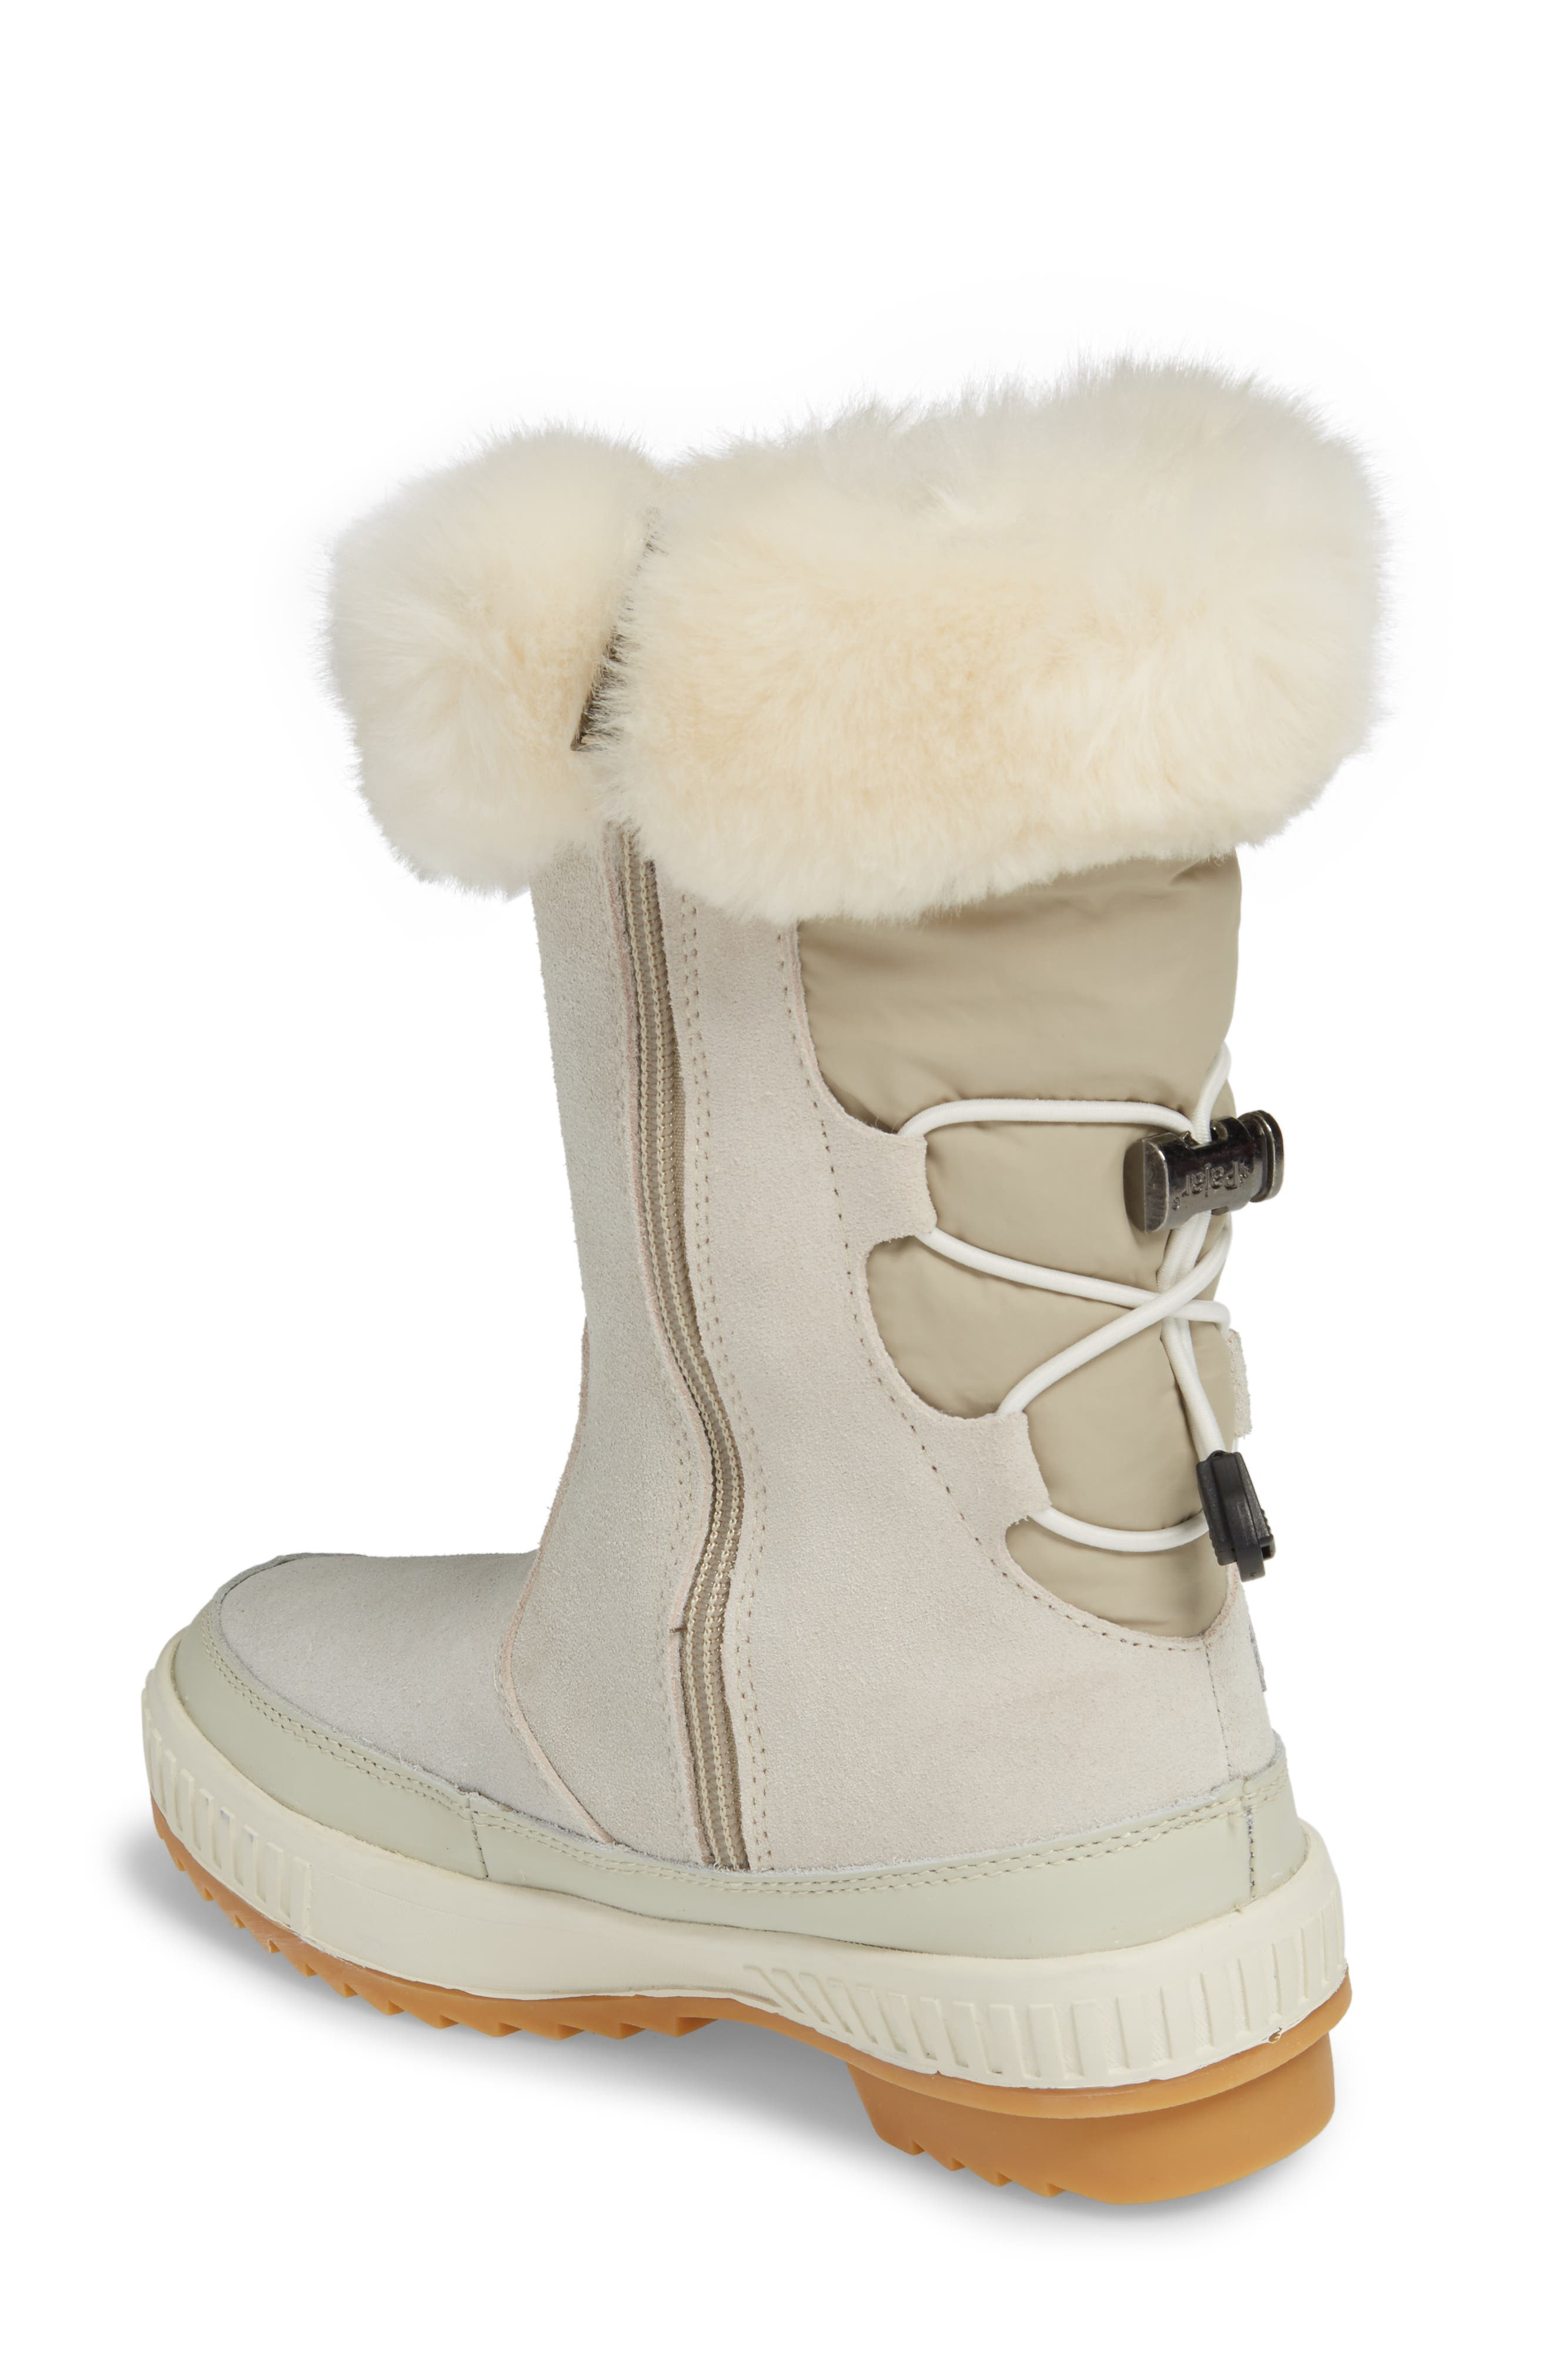 Kady Waterproof Insulated Winter Boot with Plush Cuff,                             Alternate thumbnail 2, color,                             100